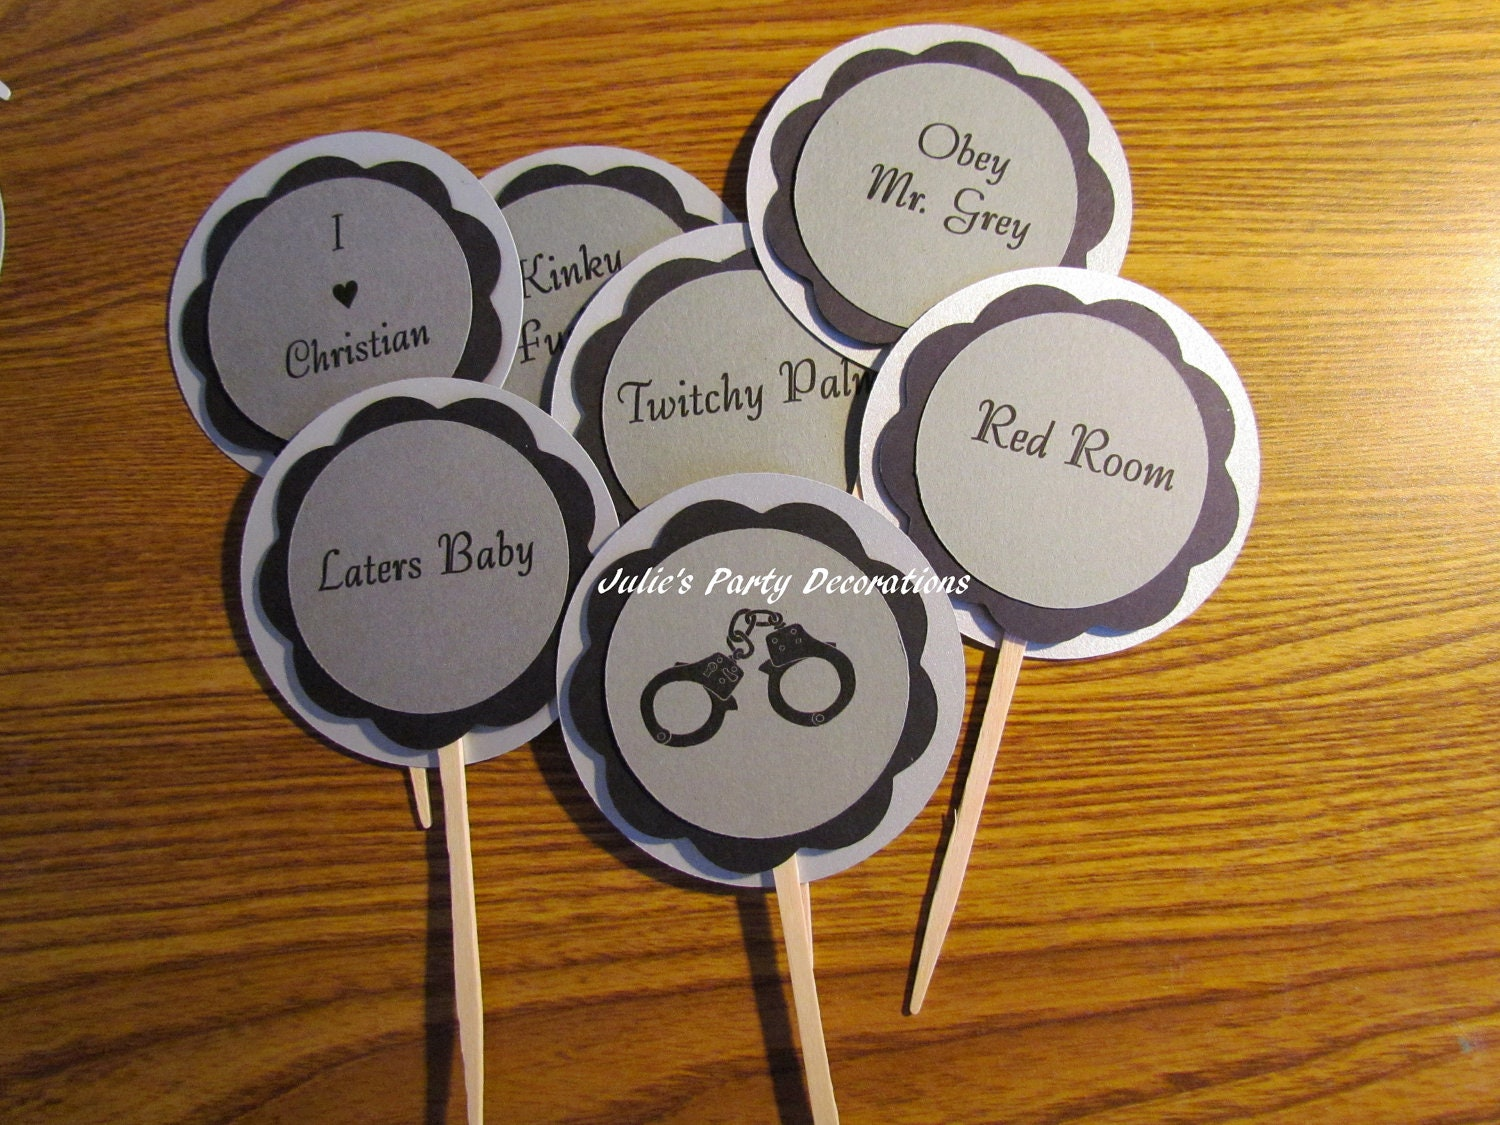 50 Shades Of Grey Decorations 6 Fifty Shades Of Grey Cupcake Toppers